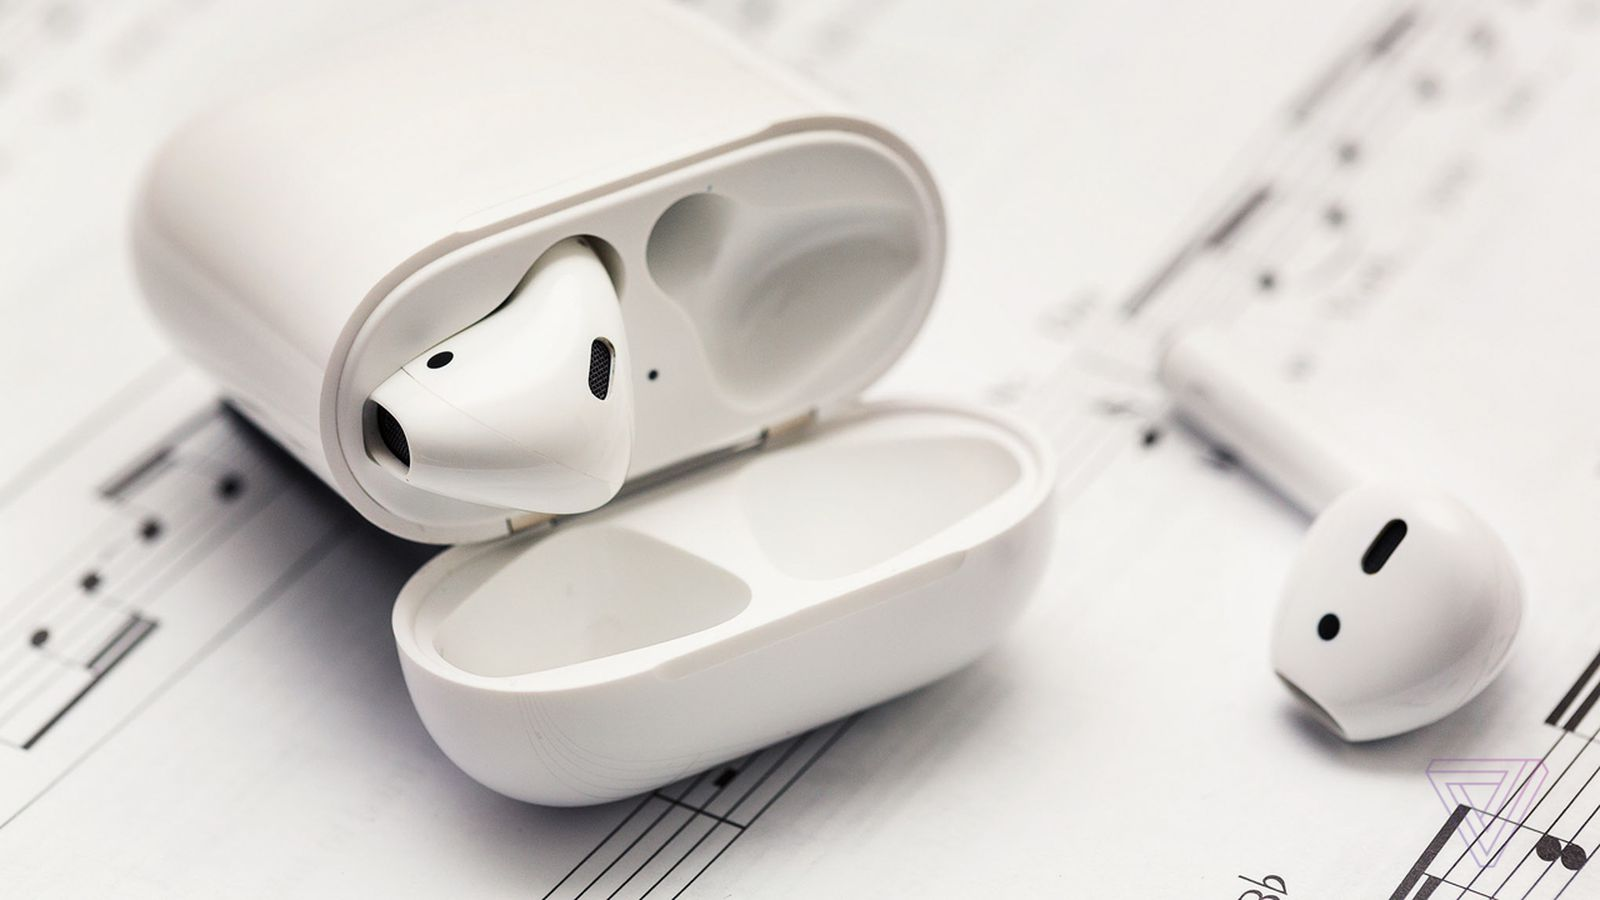 Apple AirPods review: wireless that wows, earbuds that don't